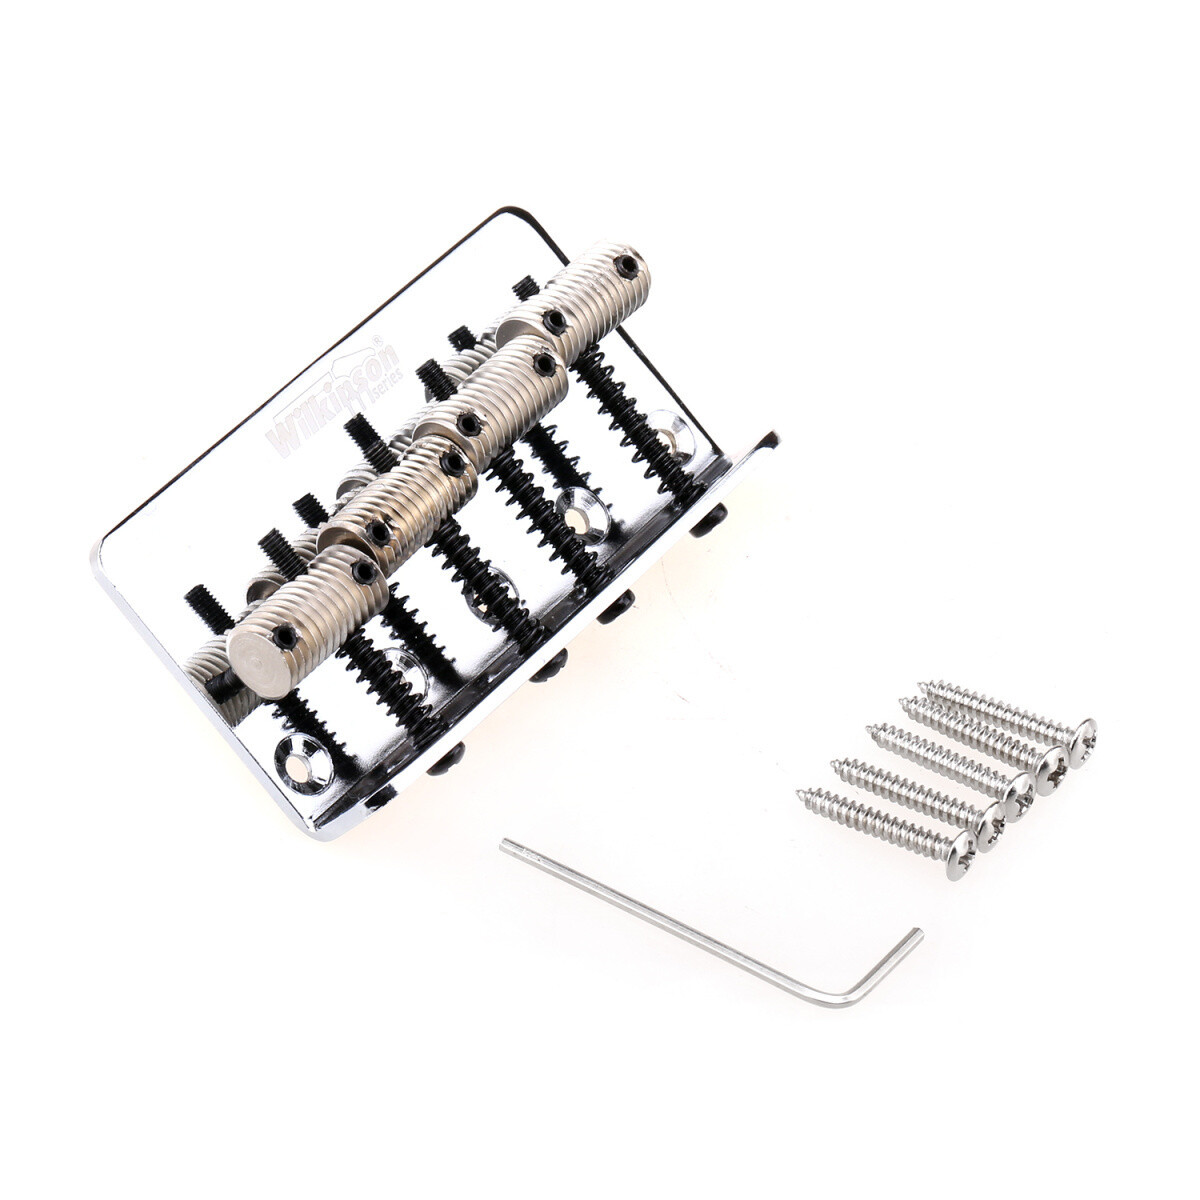 Wilkinson 57mm(2-1/4 inch) String Spacing 4-String Fixed Bass Bridge Threaded Saddles for Precision Bass and Jazz Bass, Chrome